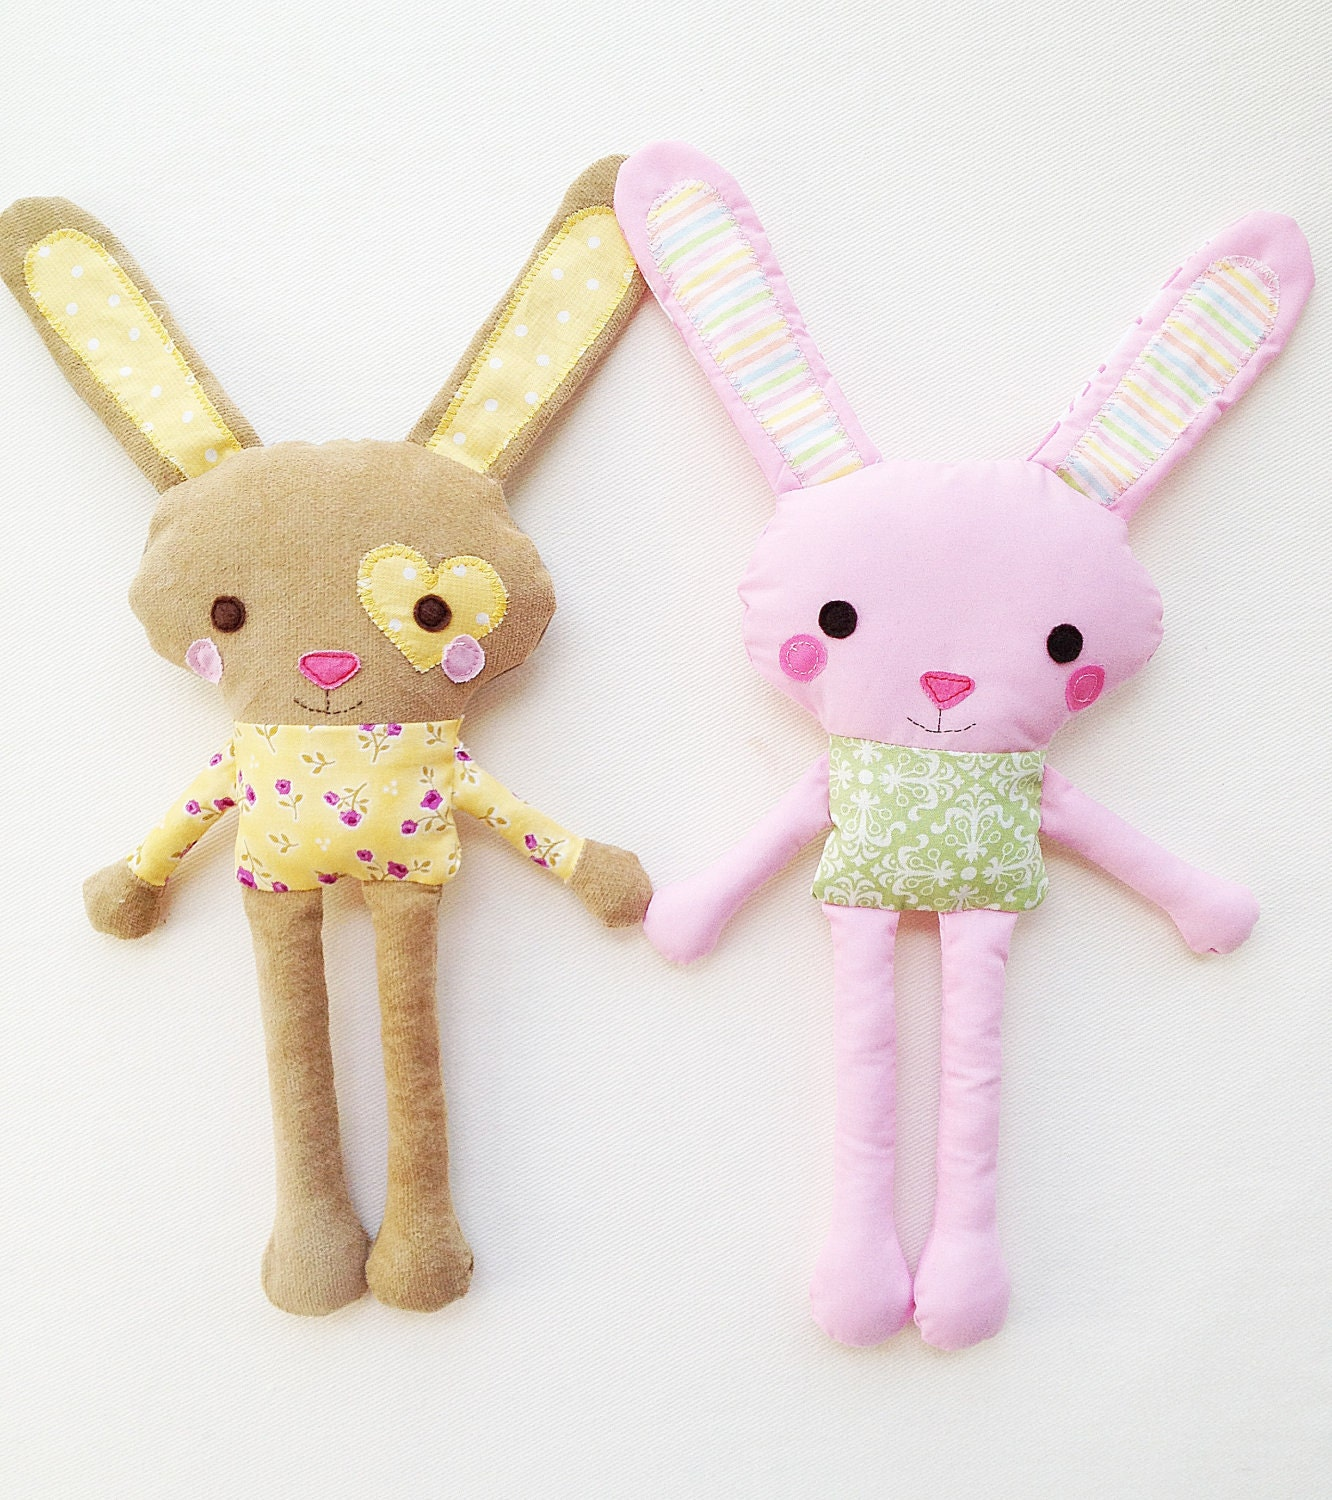 bunny template for sewing - bunny sewing pattern mini bunny plush toy pattern pdf